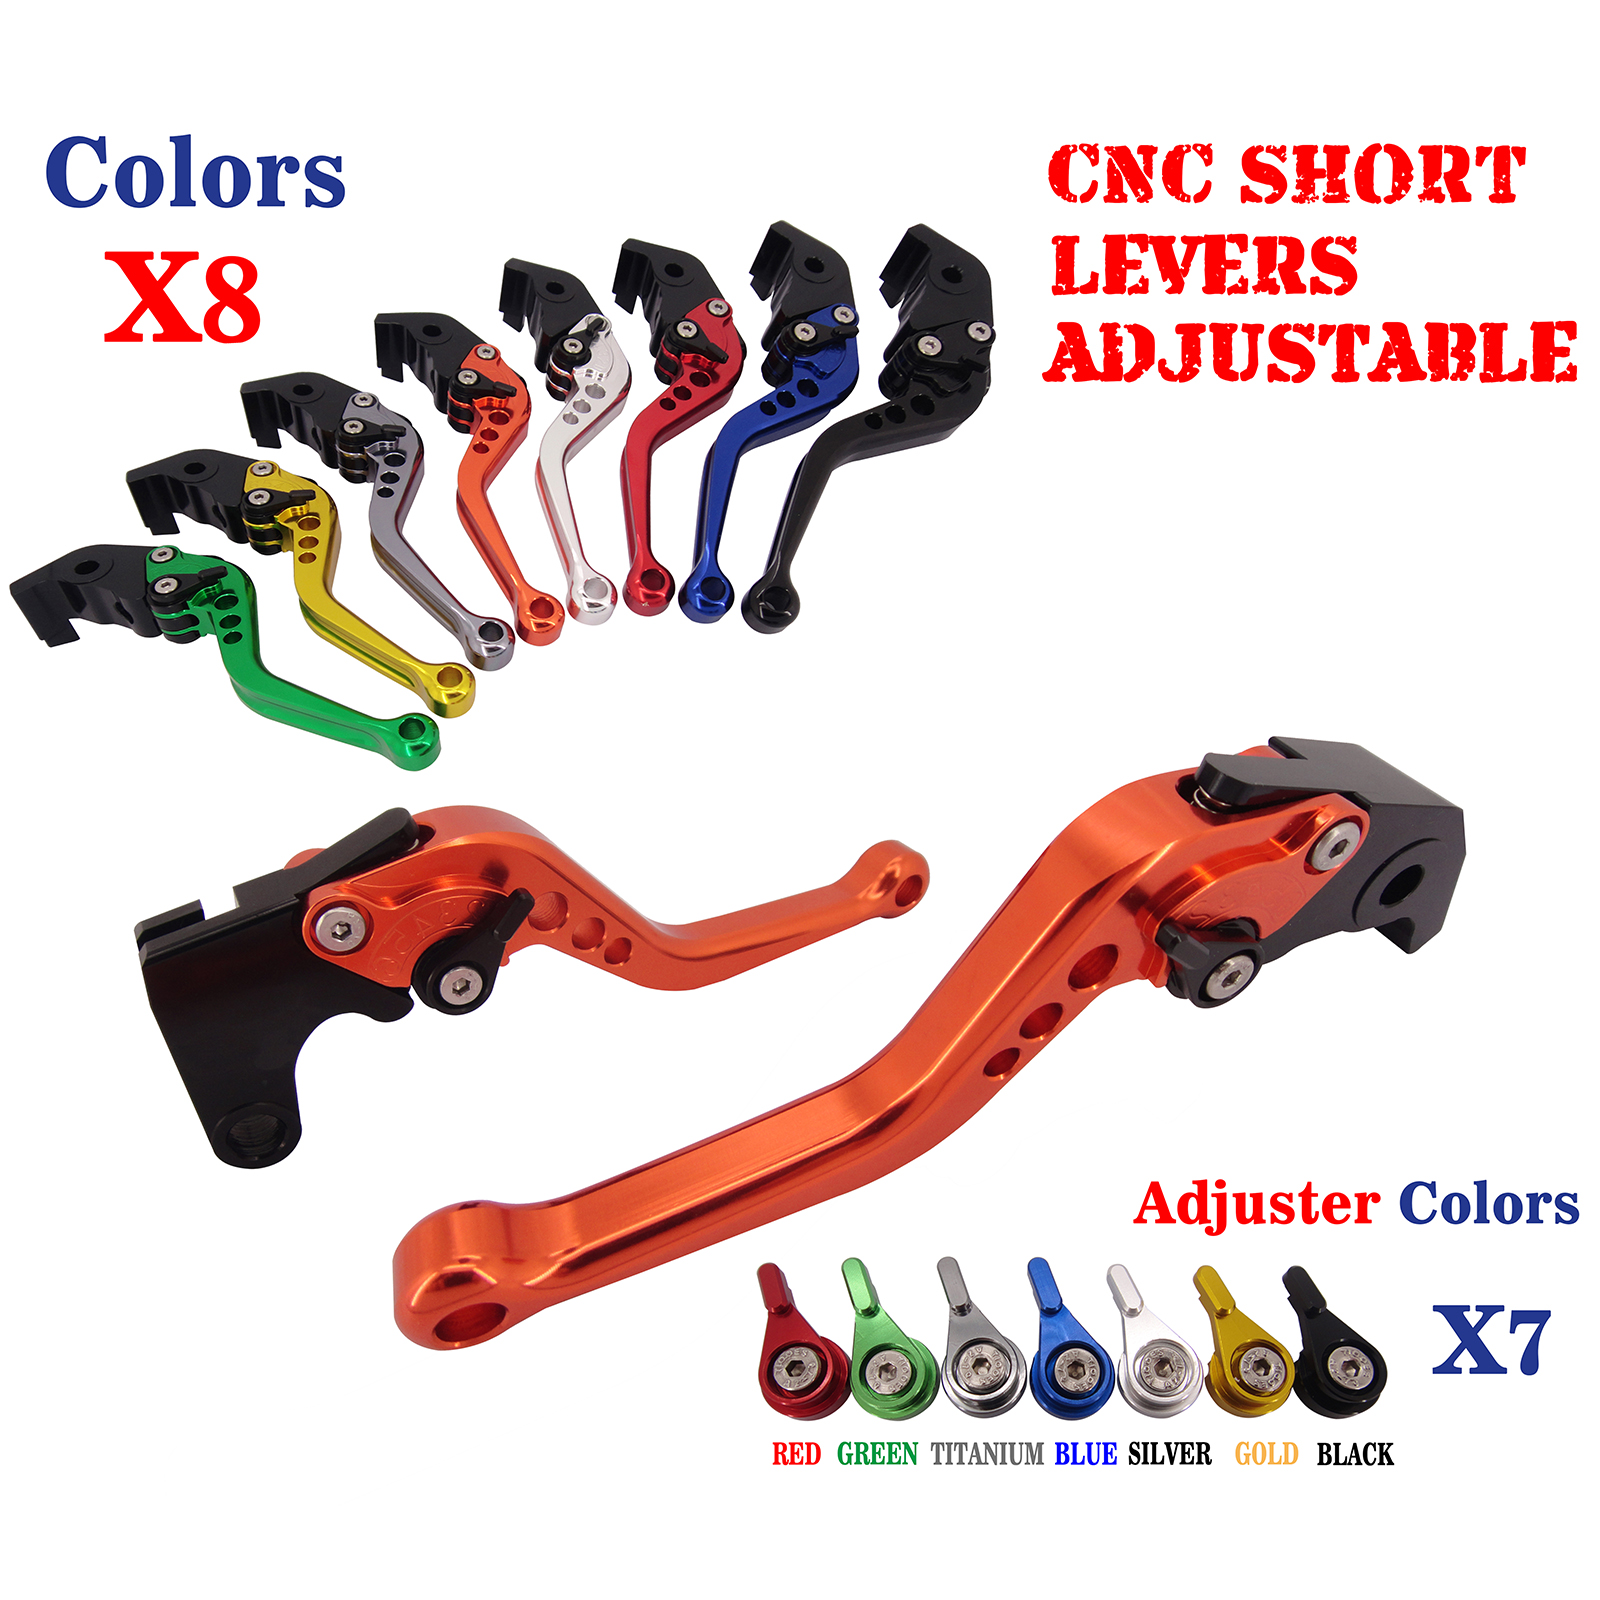 CNC Short Adjustable Brake Clutch Levers For Kawasaki Z1000 2007 2008 2009 2010 2011 2012 2013 2014 Motorbike Brakes the new motorcycle bike 2006 2007 2008 2009 2010 2011 kawasaki zx 10r zx10r zx 10r knife brake clutch levers cnc